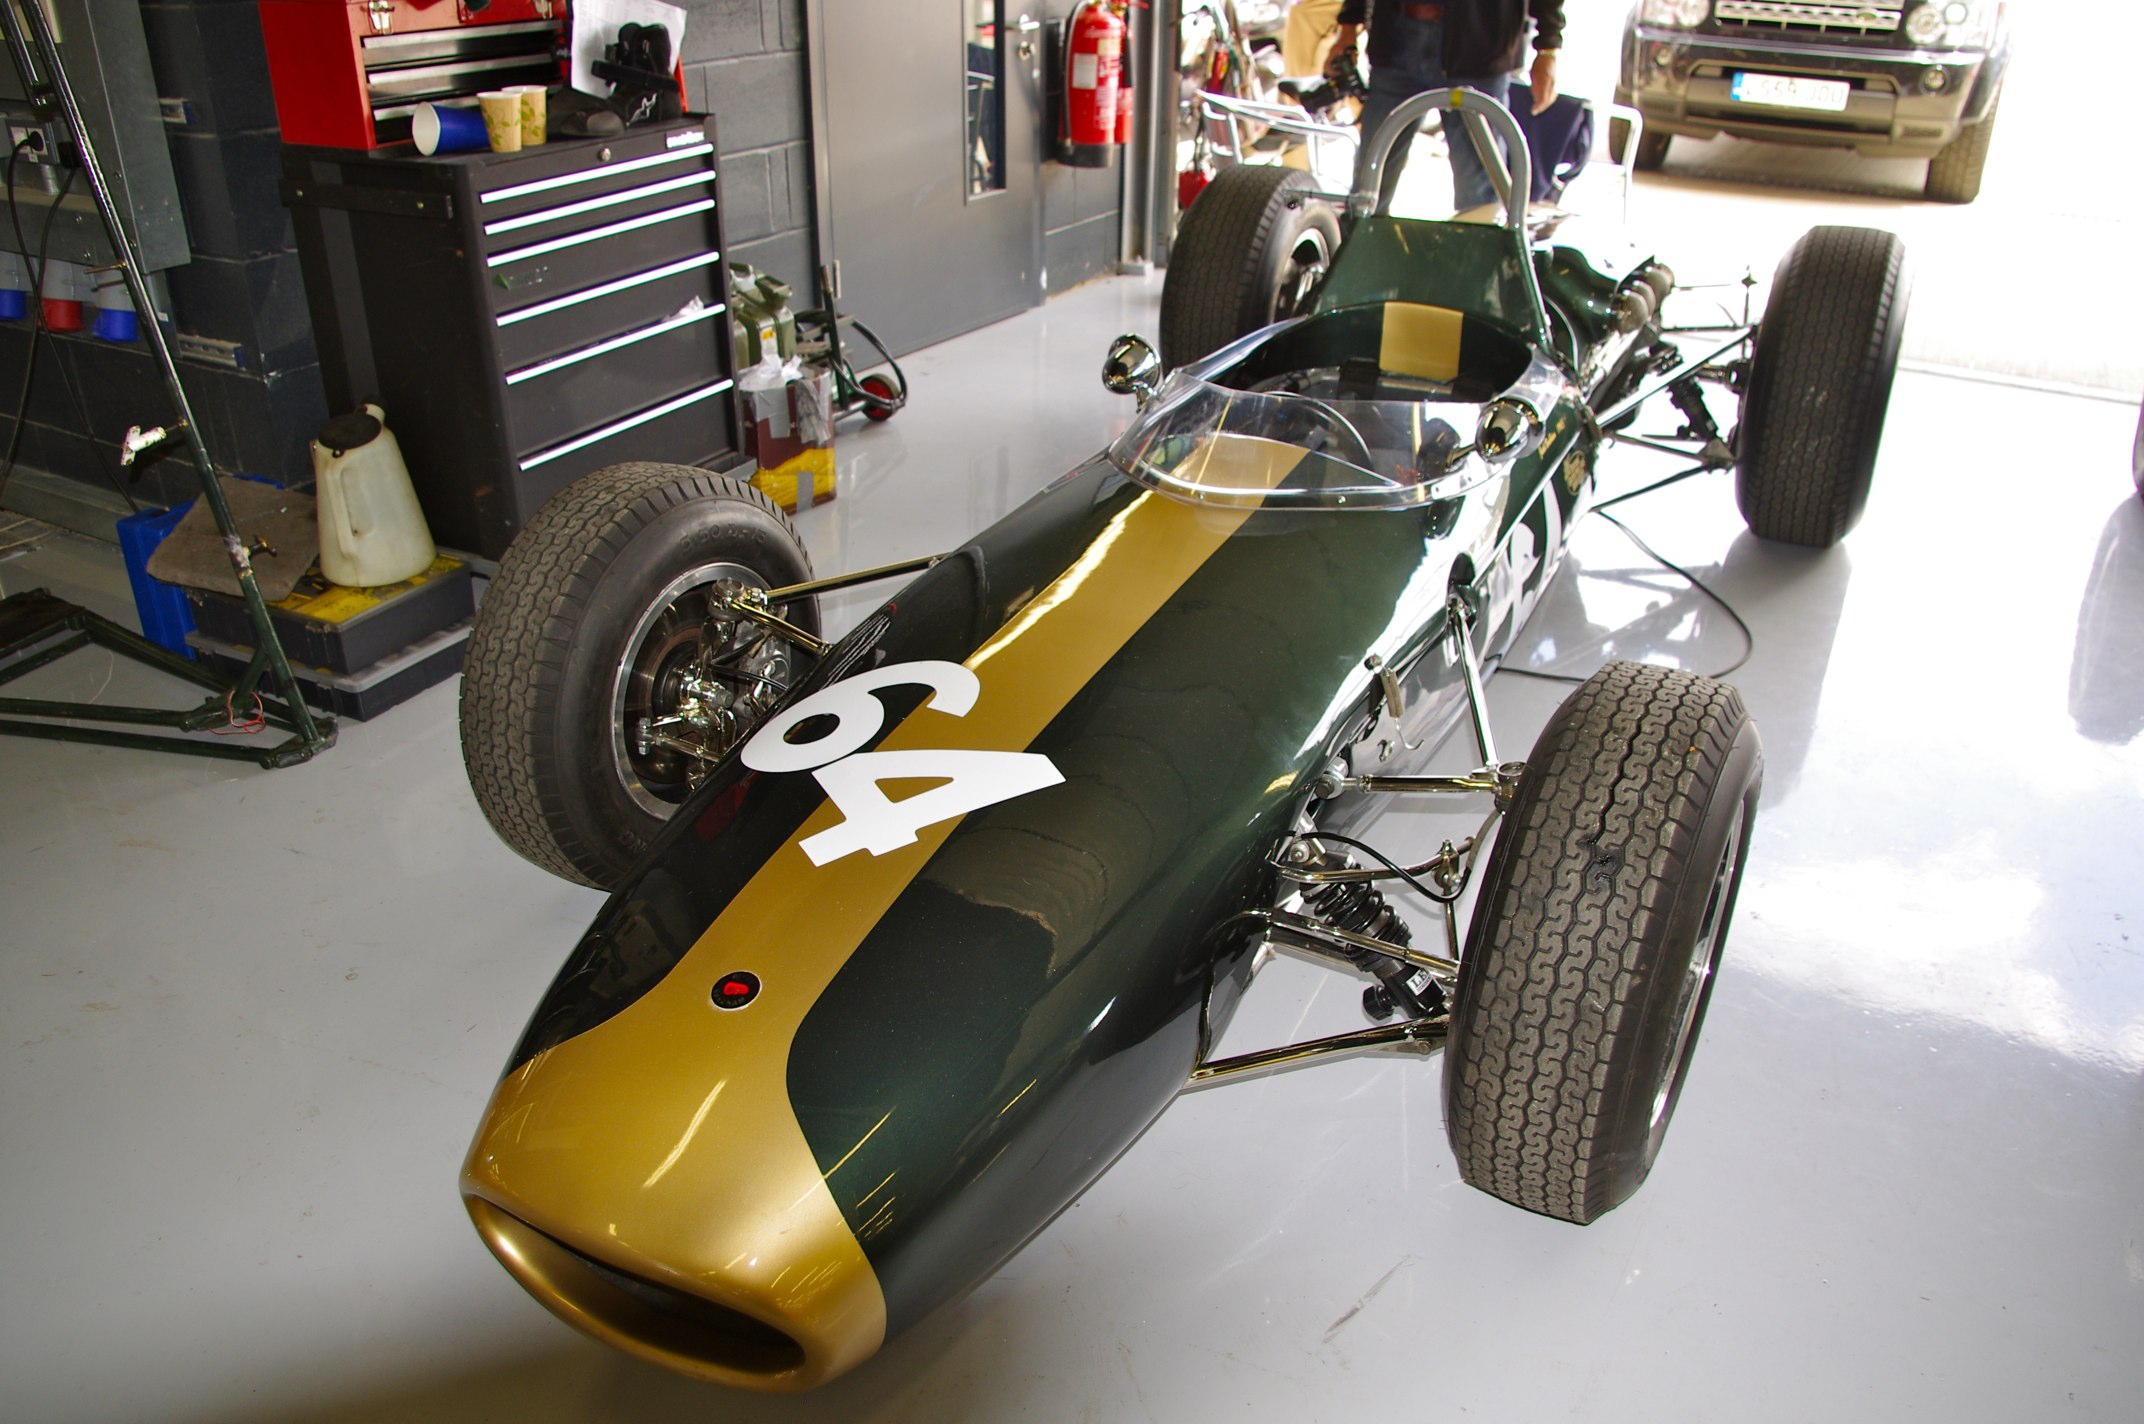 File:Lotus 22 at Silverstone Classic 2011.jpg - Wikimedia Commons